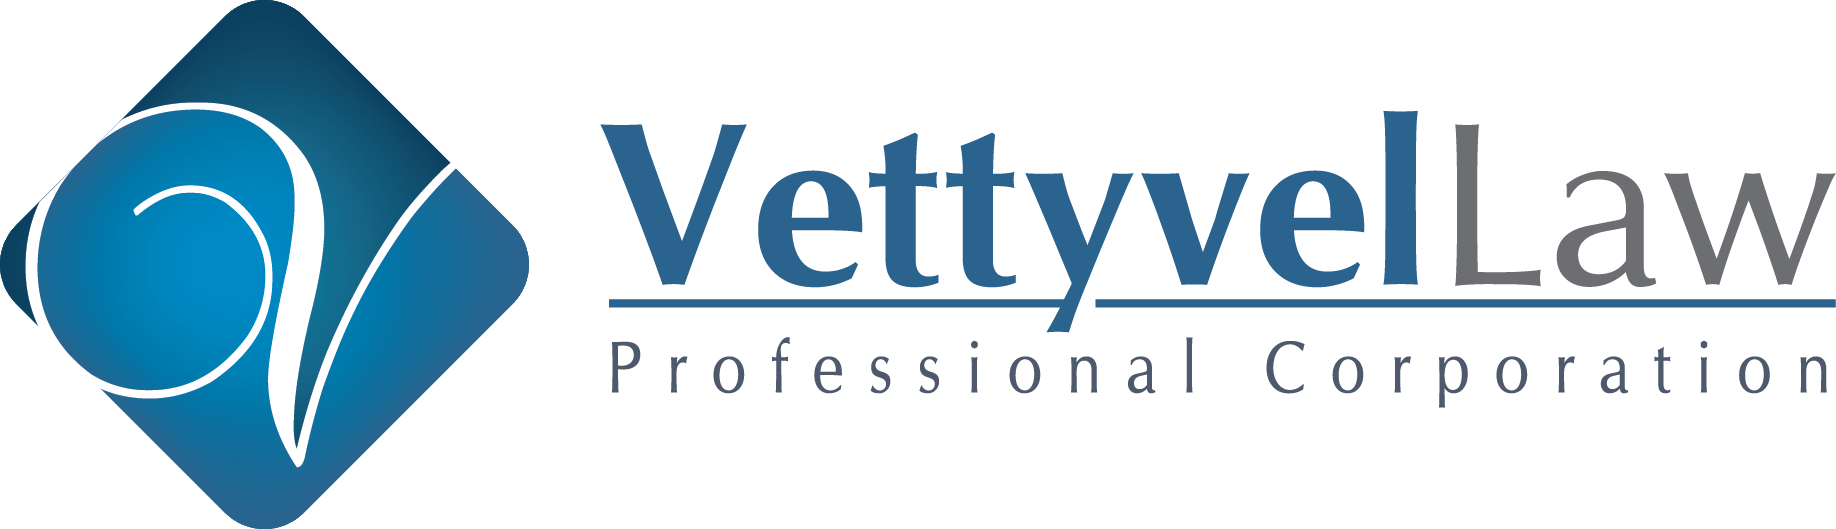 Vettyvel Law Professional Corporation